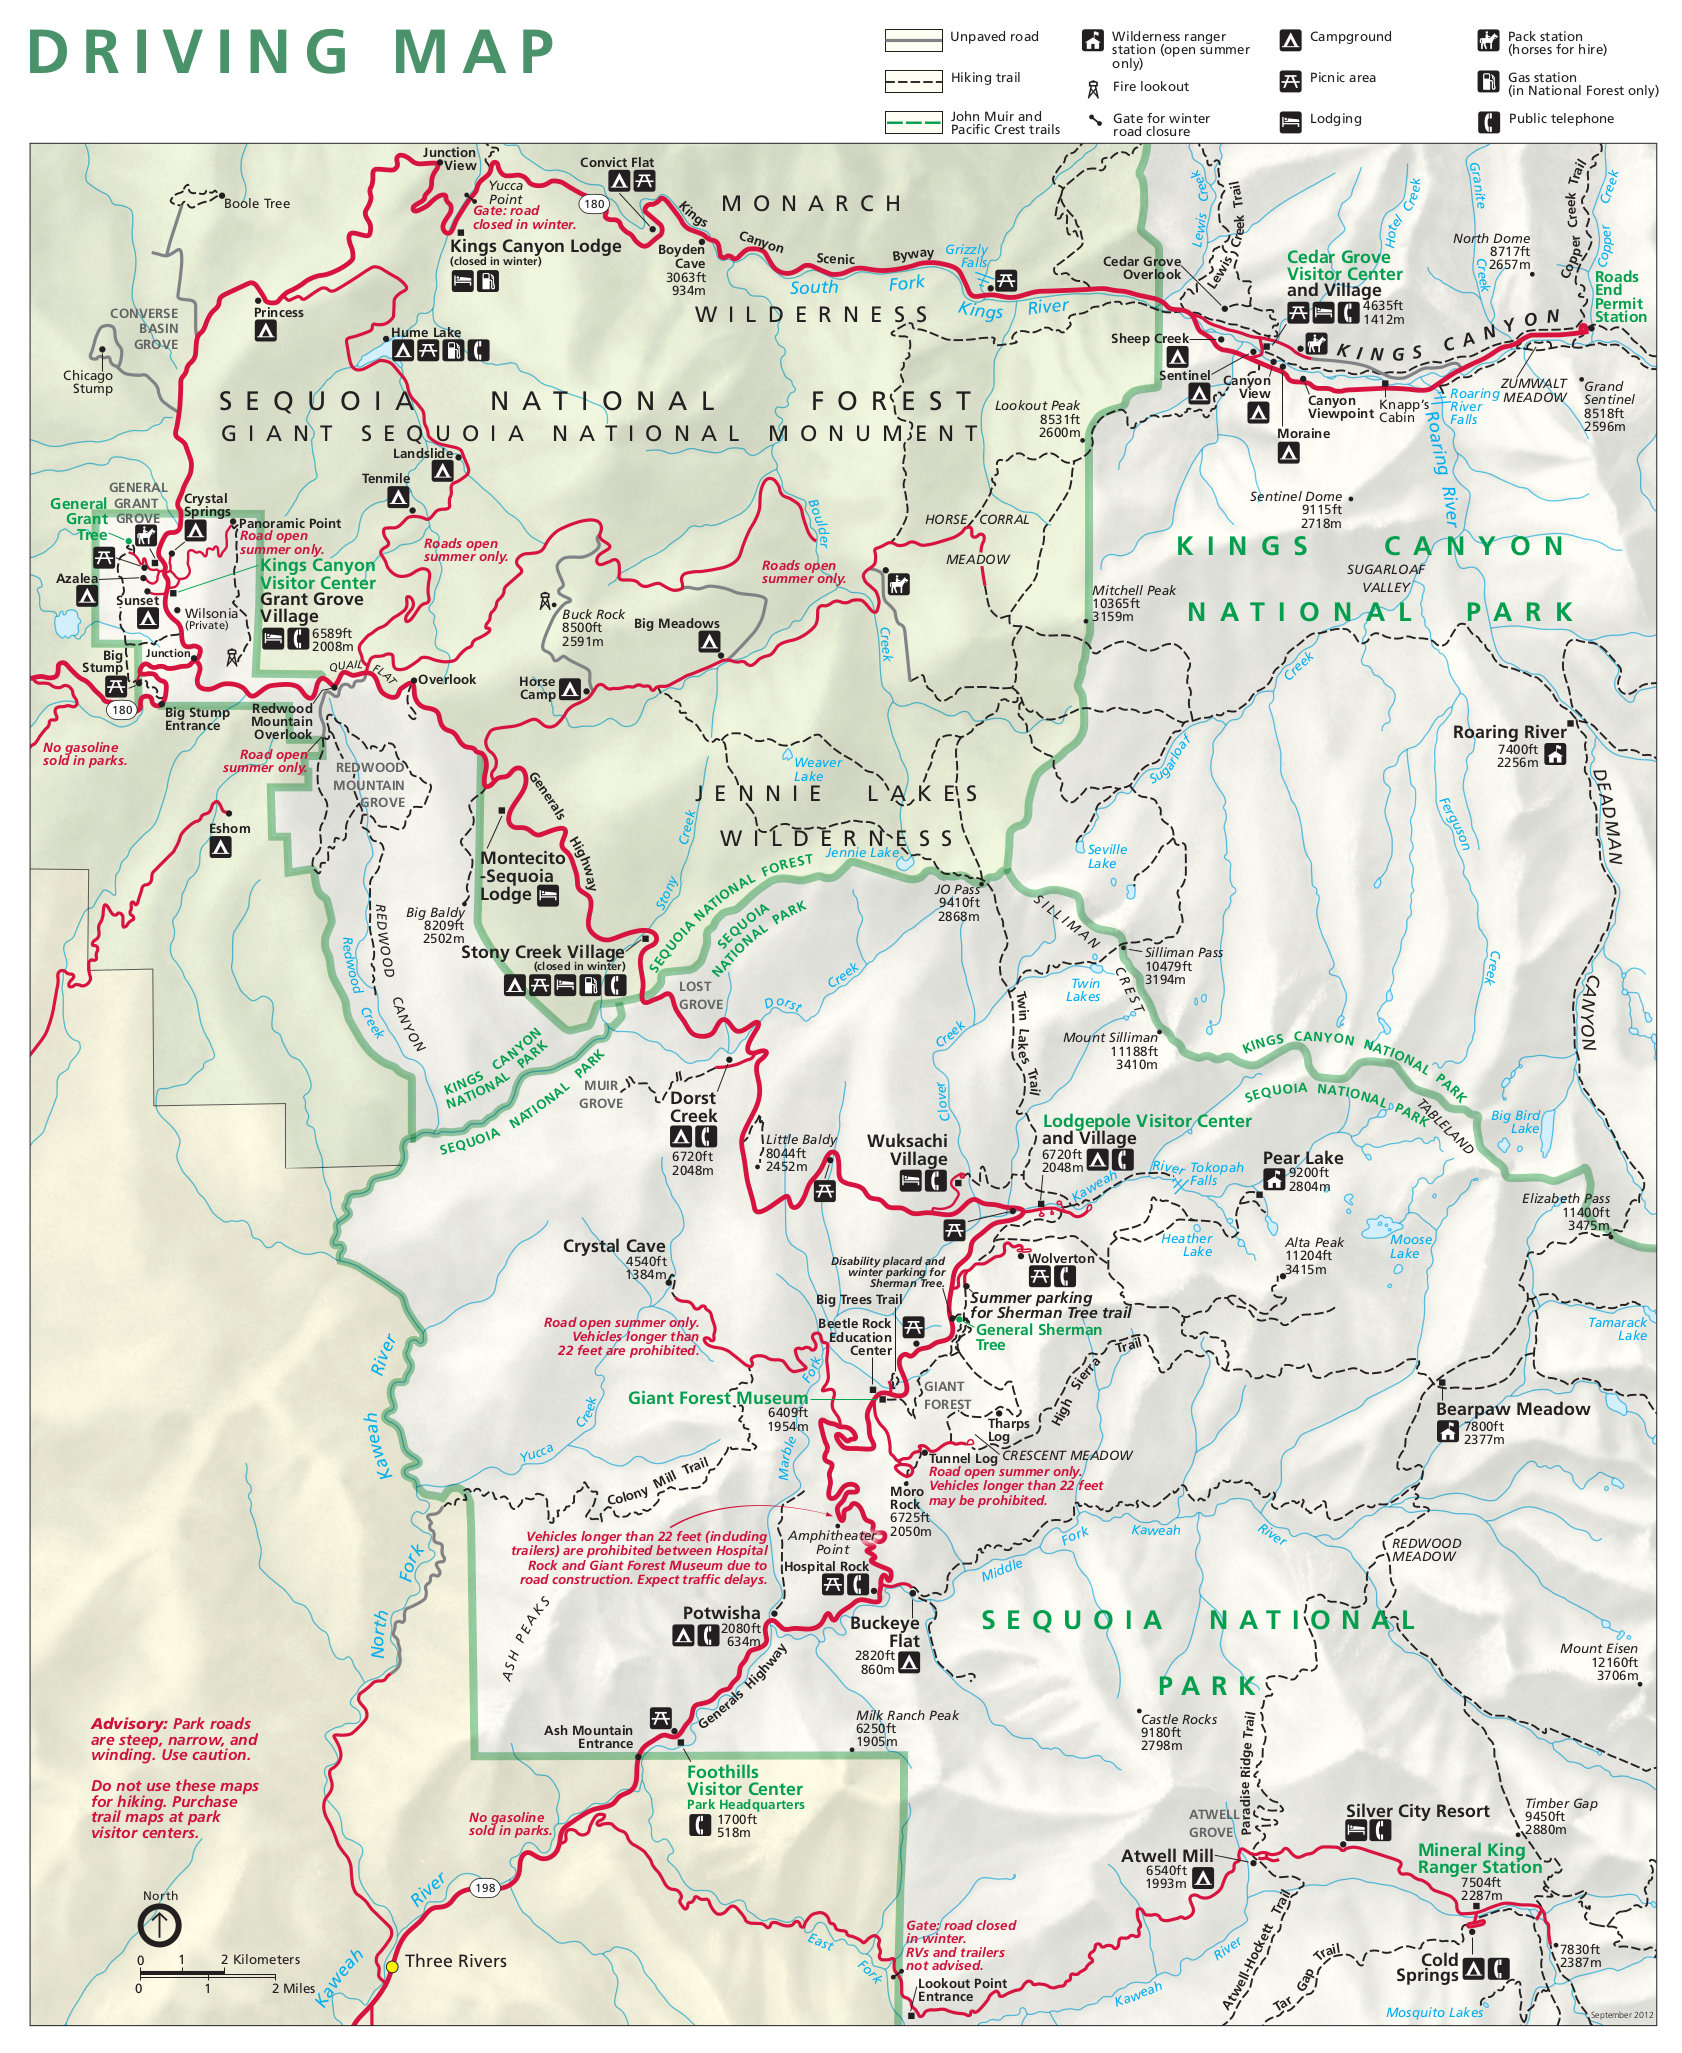 sequoia and kings canyon detail map. sequoia maps  npmapscom  just free maps period